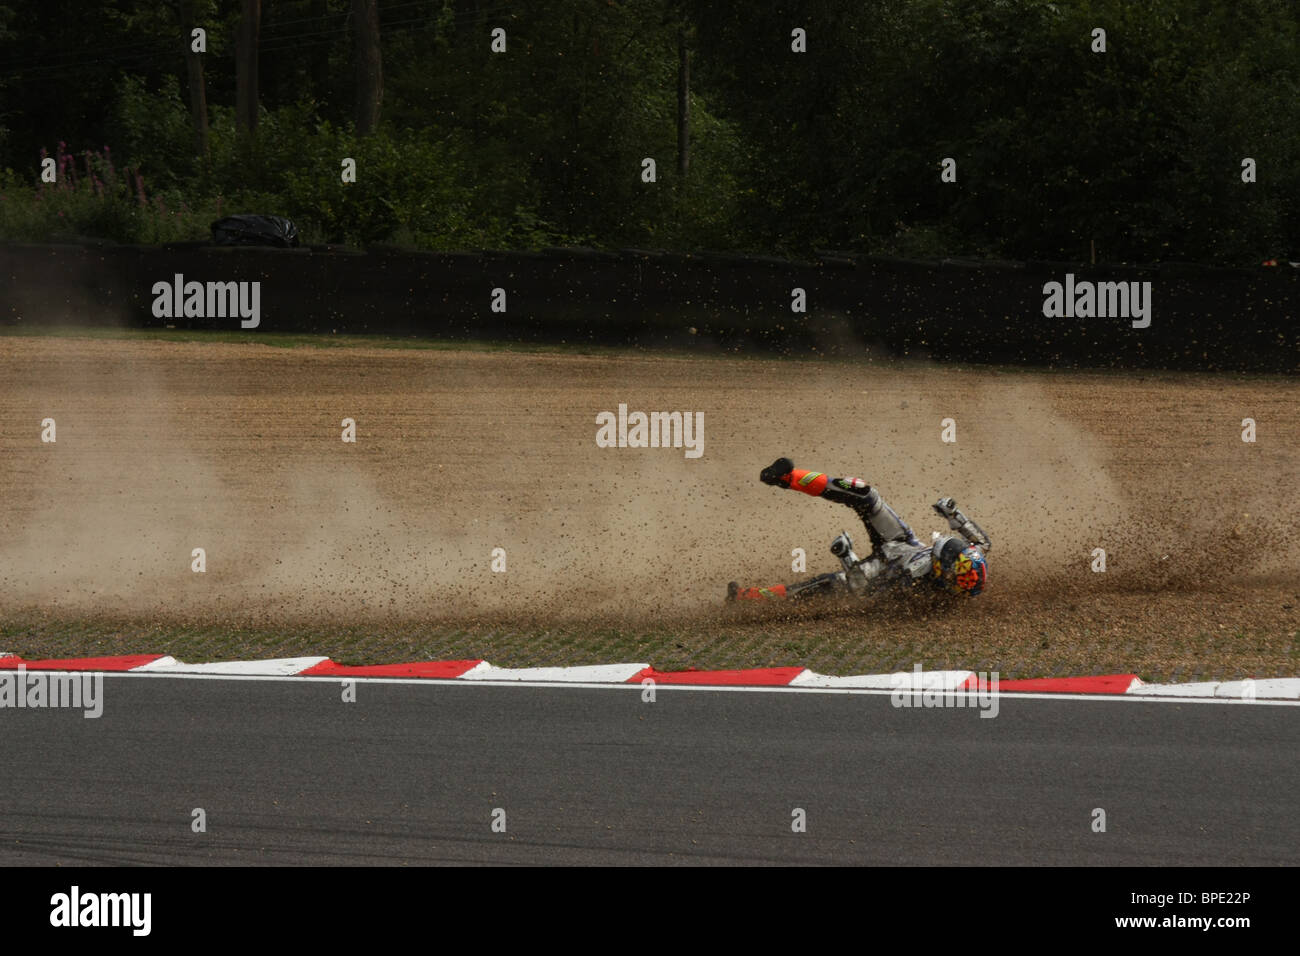 Rider slides through gravel after crashing out of the BSB at Brands Hatch - Stock Image